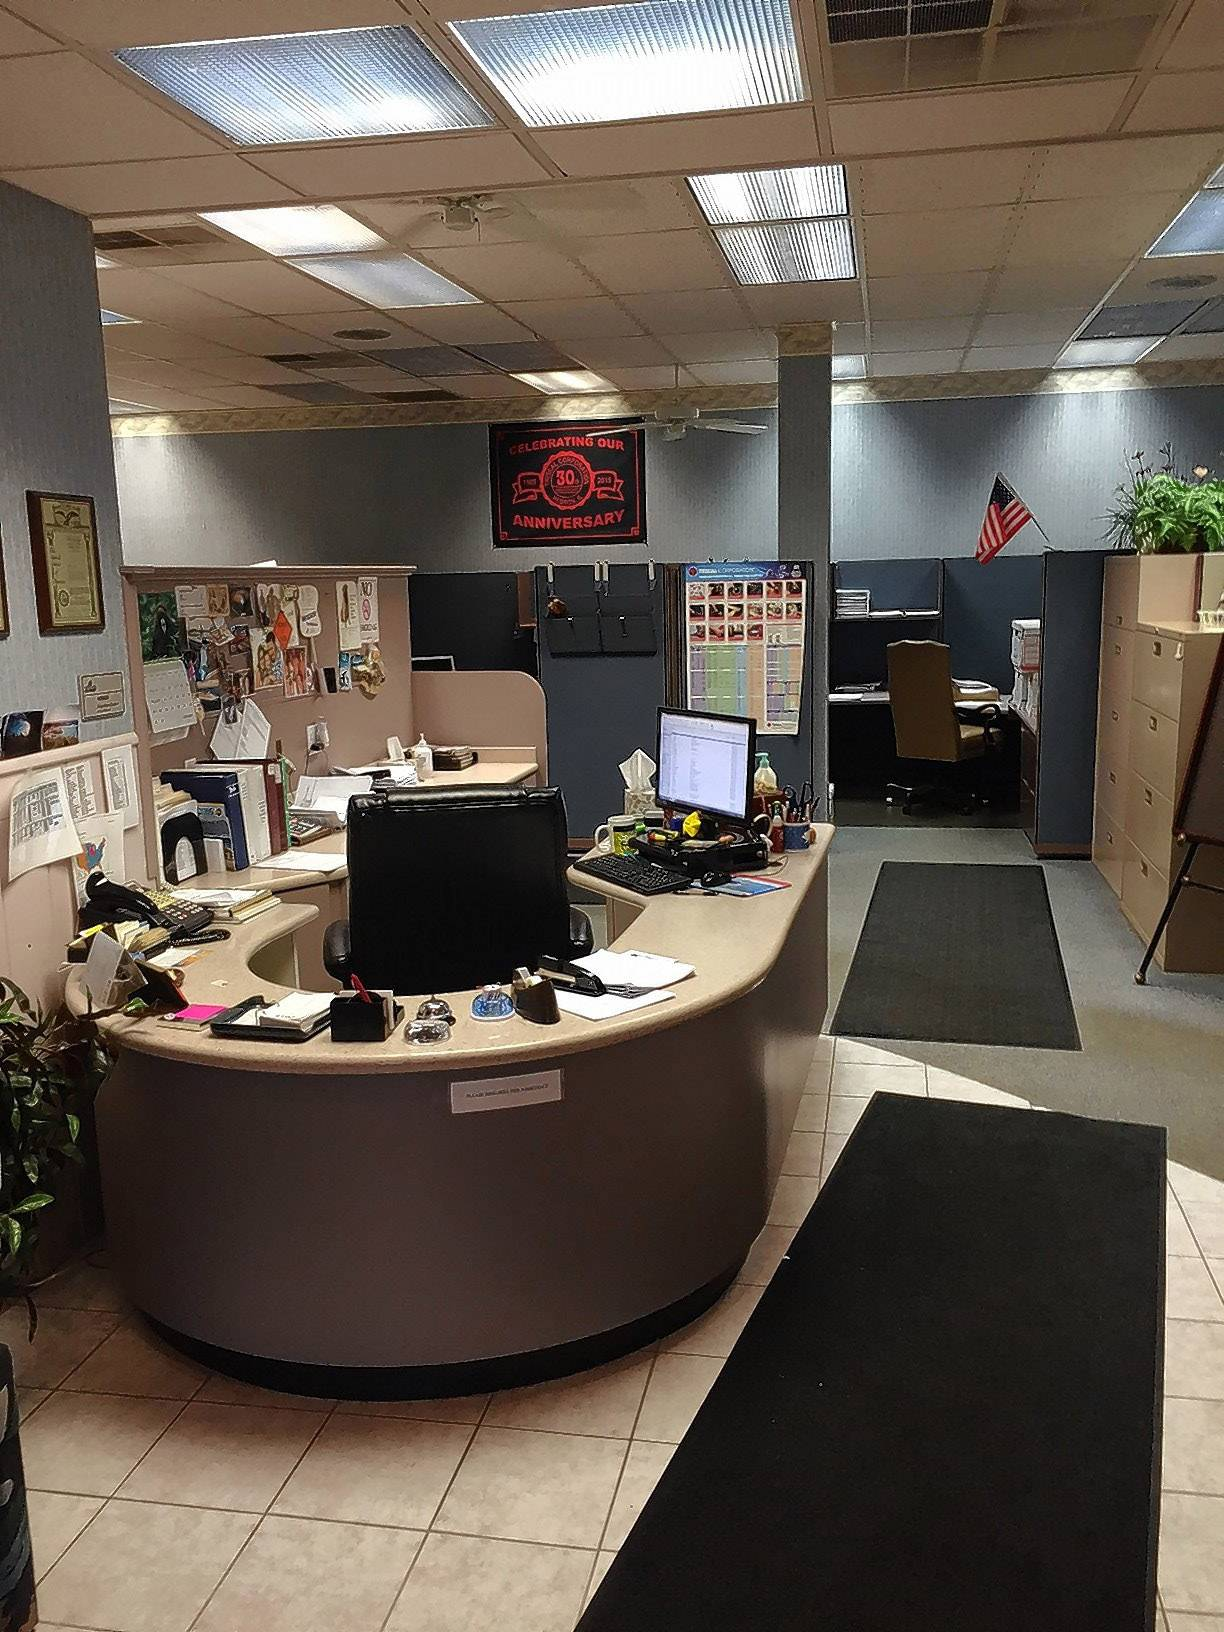 The Triseal offices in Hebron were transformed from a former photo processing lab about 28 years ago.